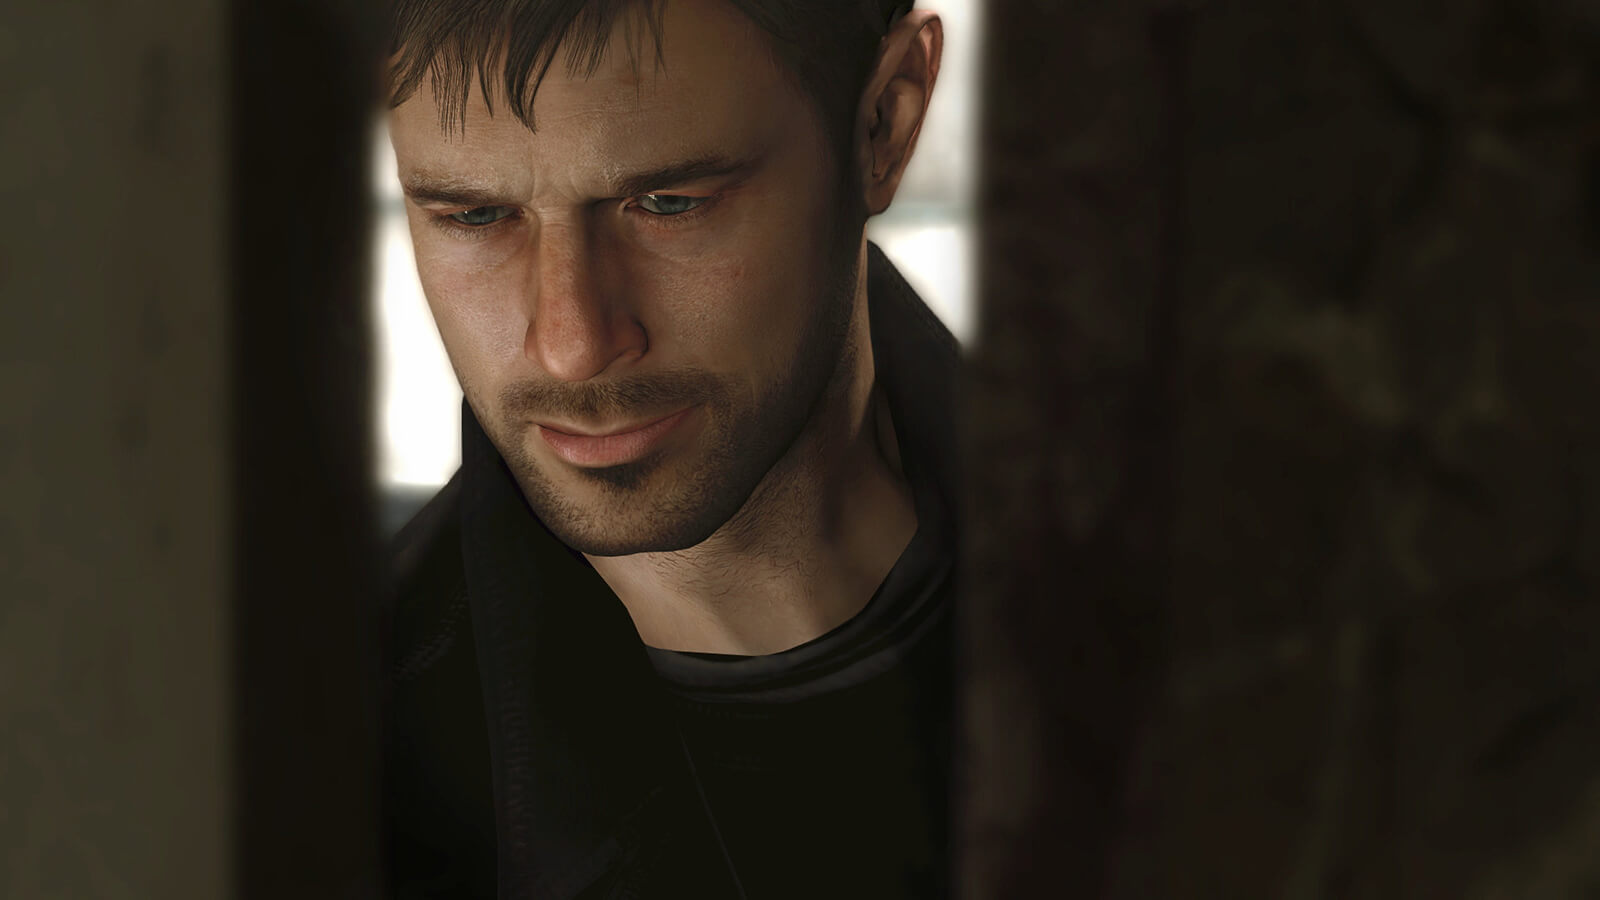 Closeup on the face of a computer-generated man in a black coat, looking down, as seen through a narrow vertical opening.